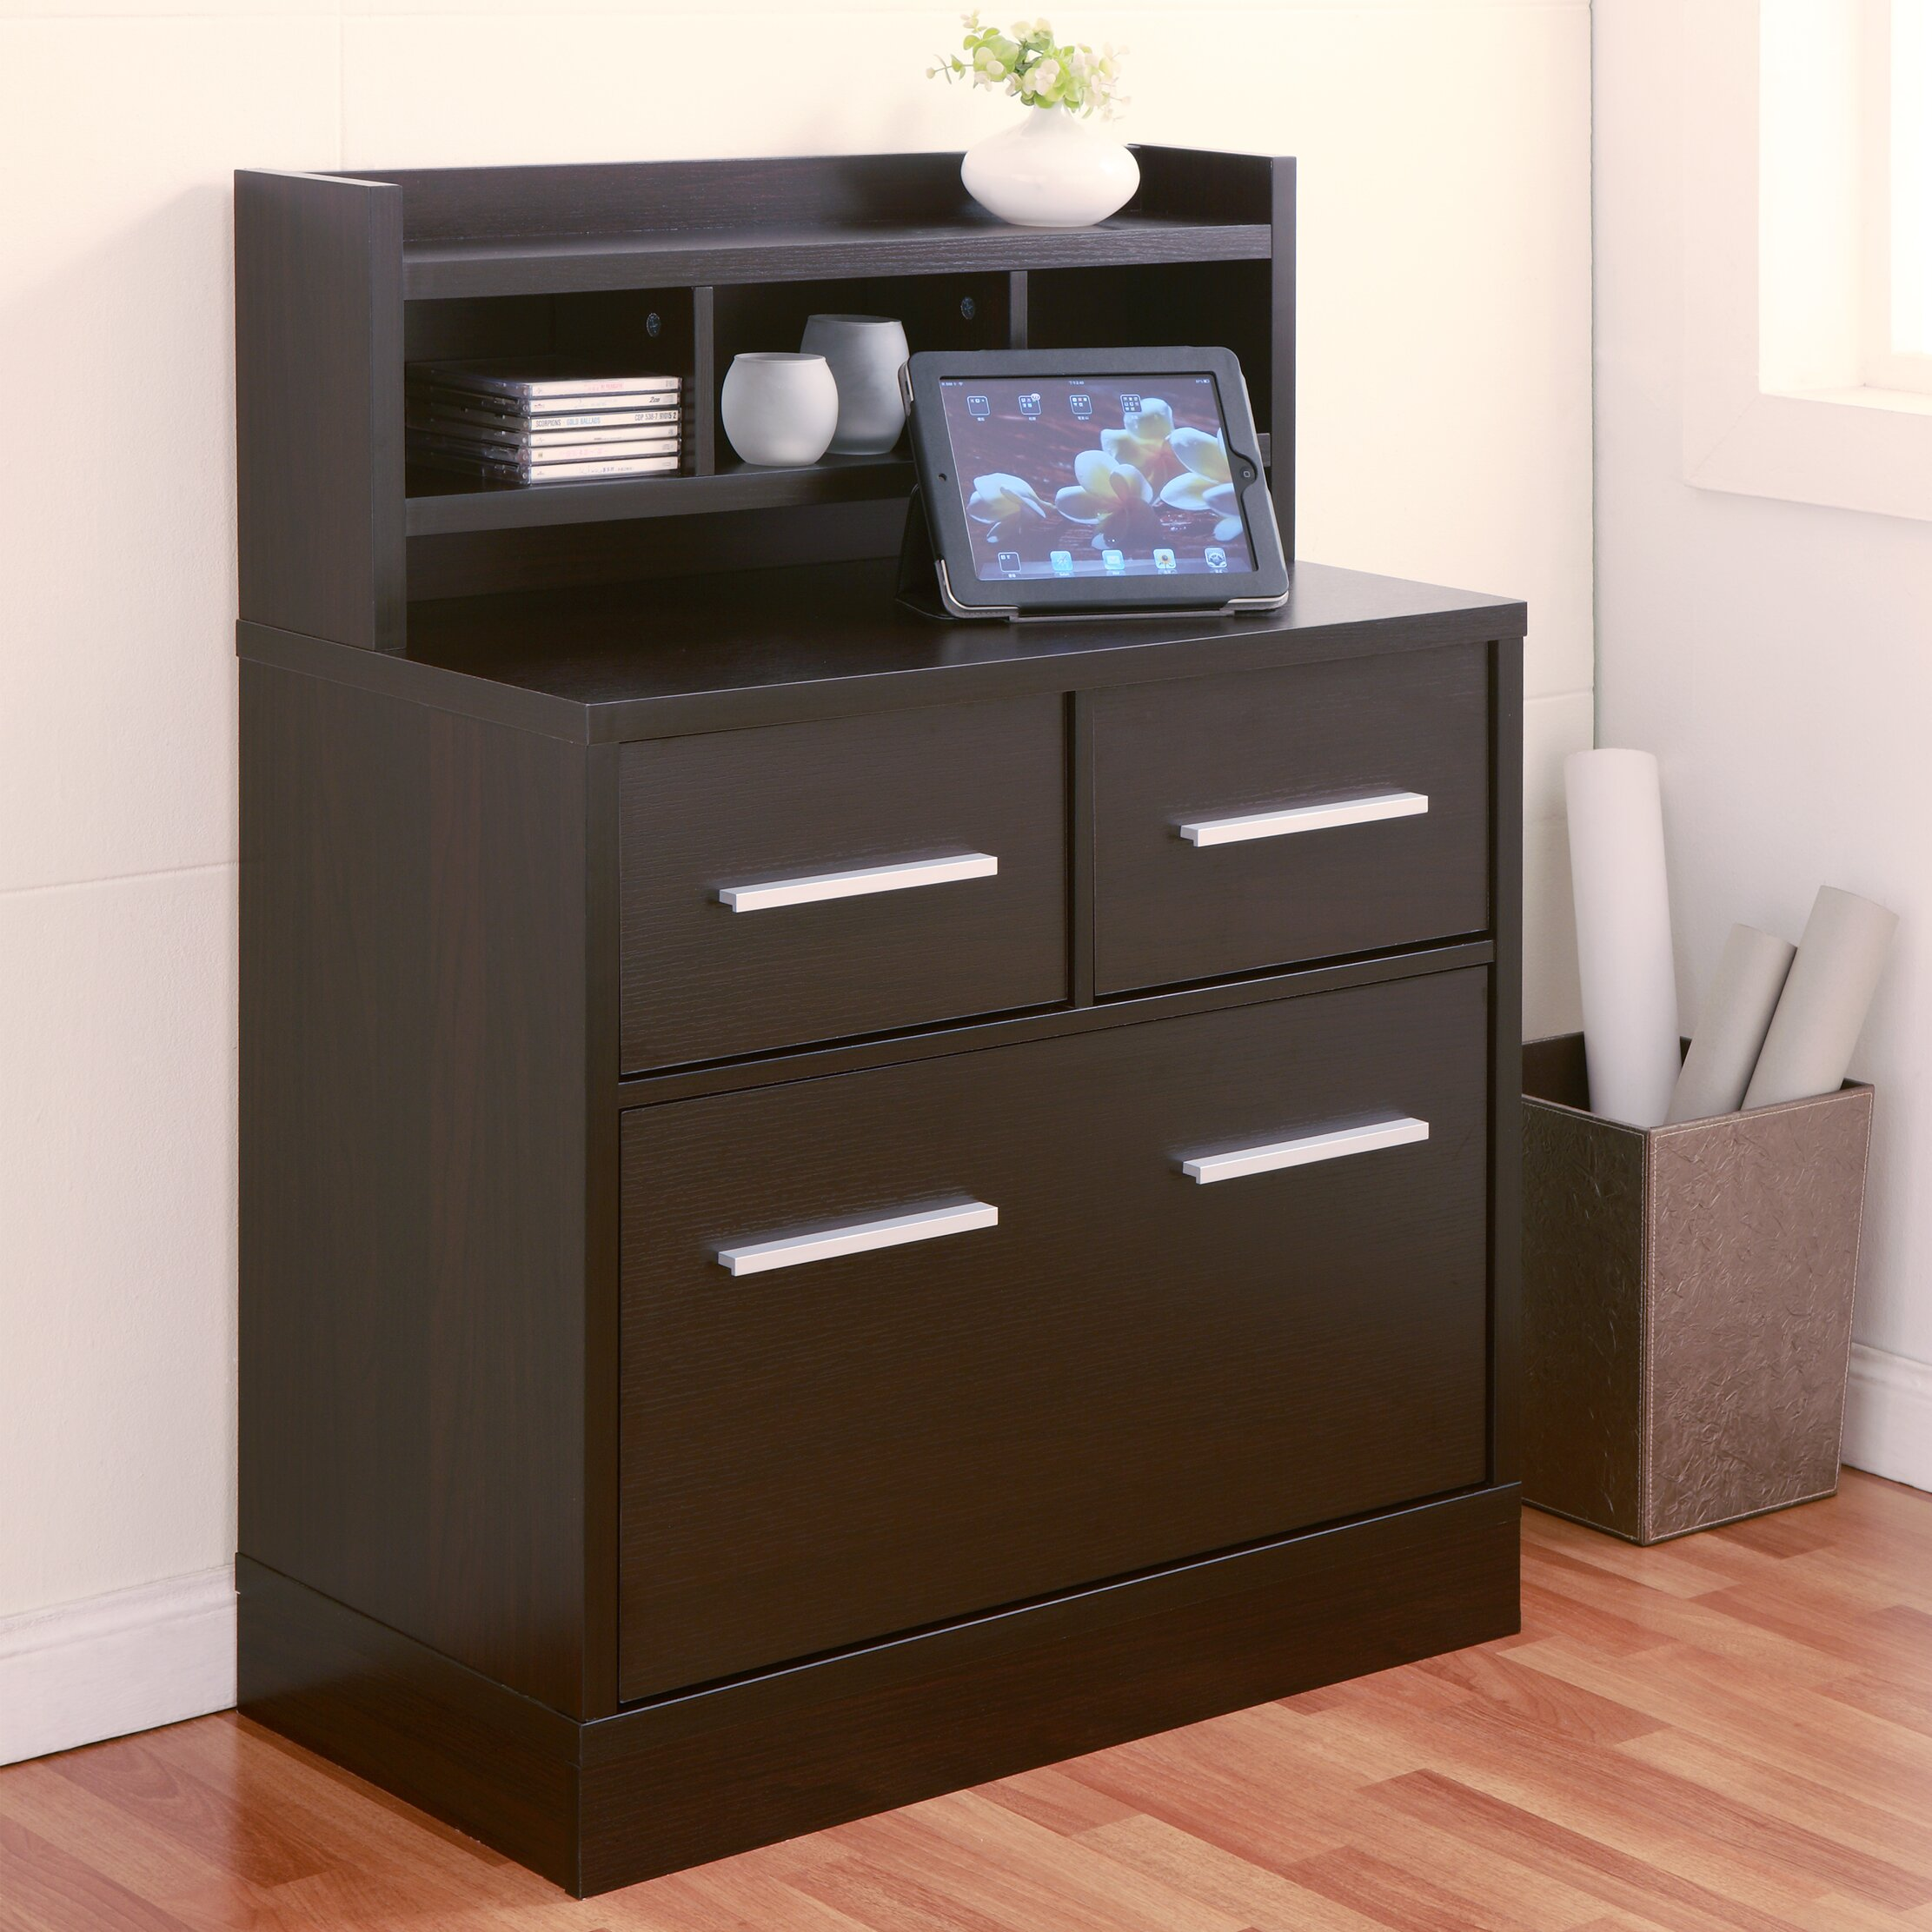 File Cabinet Hokku Designs 3 Drawer File Cabinet Workstation Reviews Wayfair